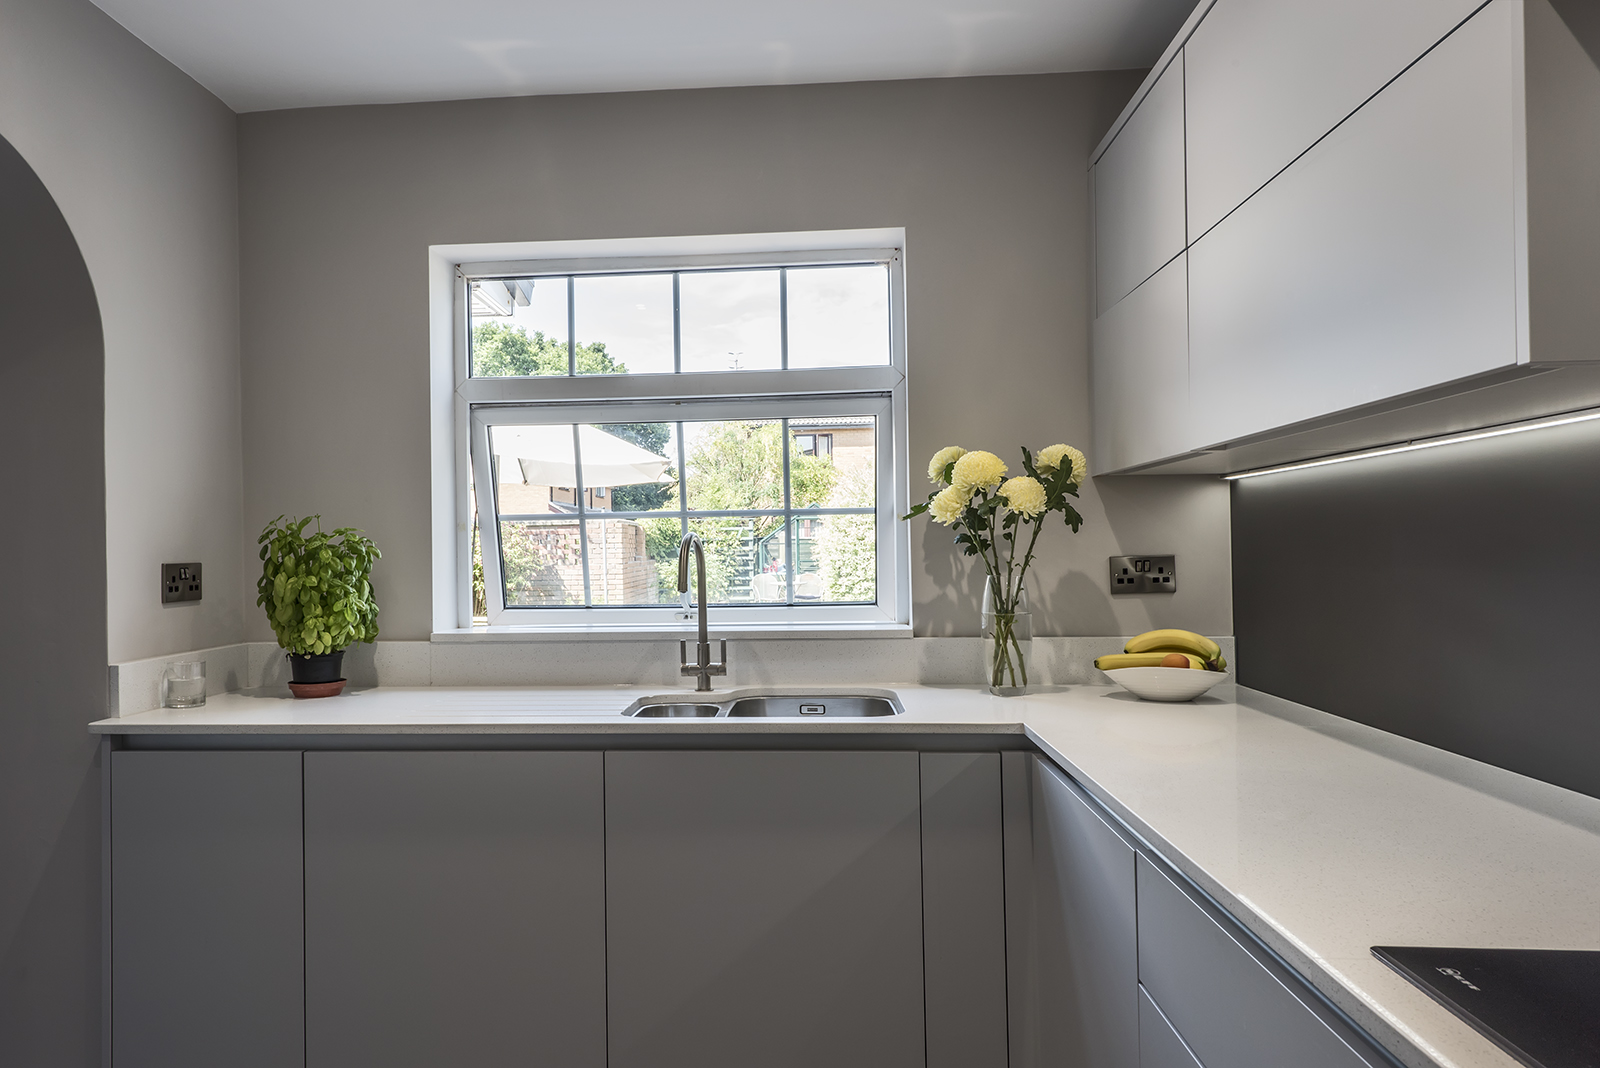 Portishead Zola Matte Light Grey Kitchen for Mrs Brightman of Portishead